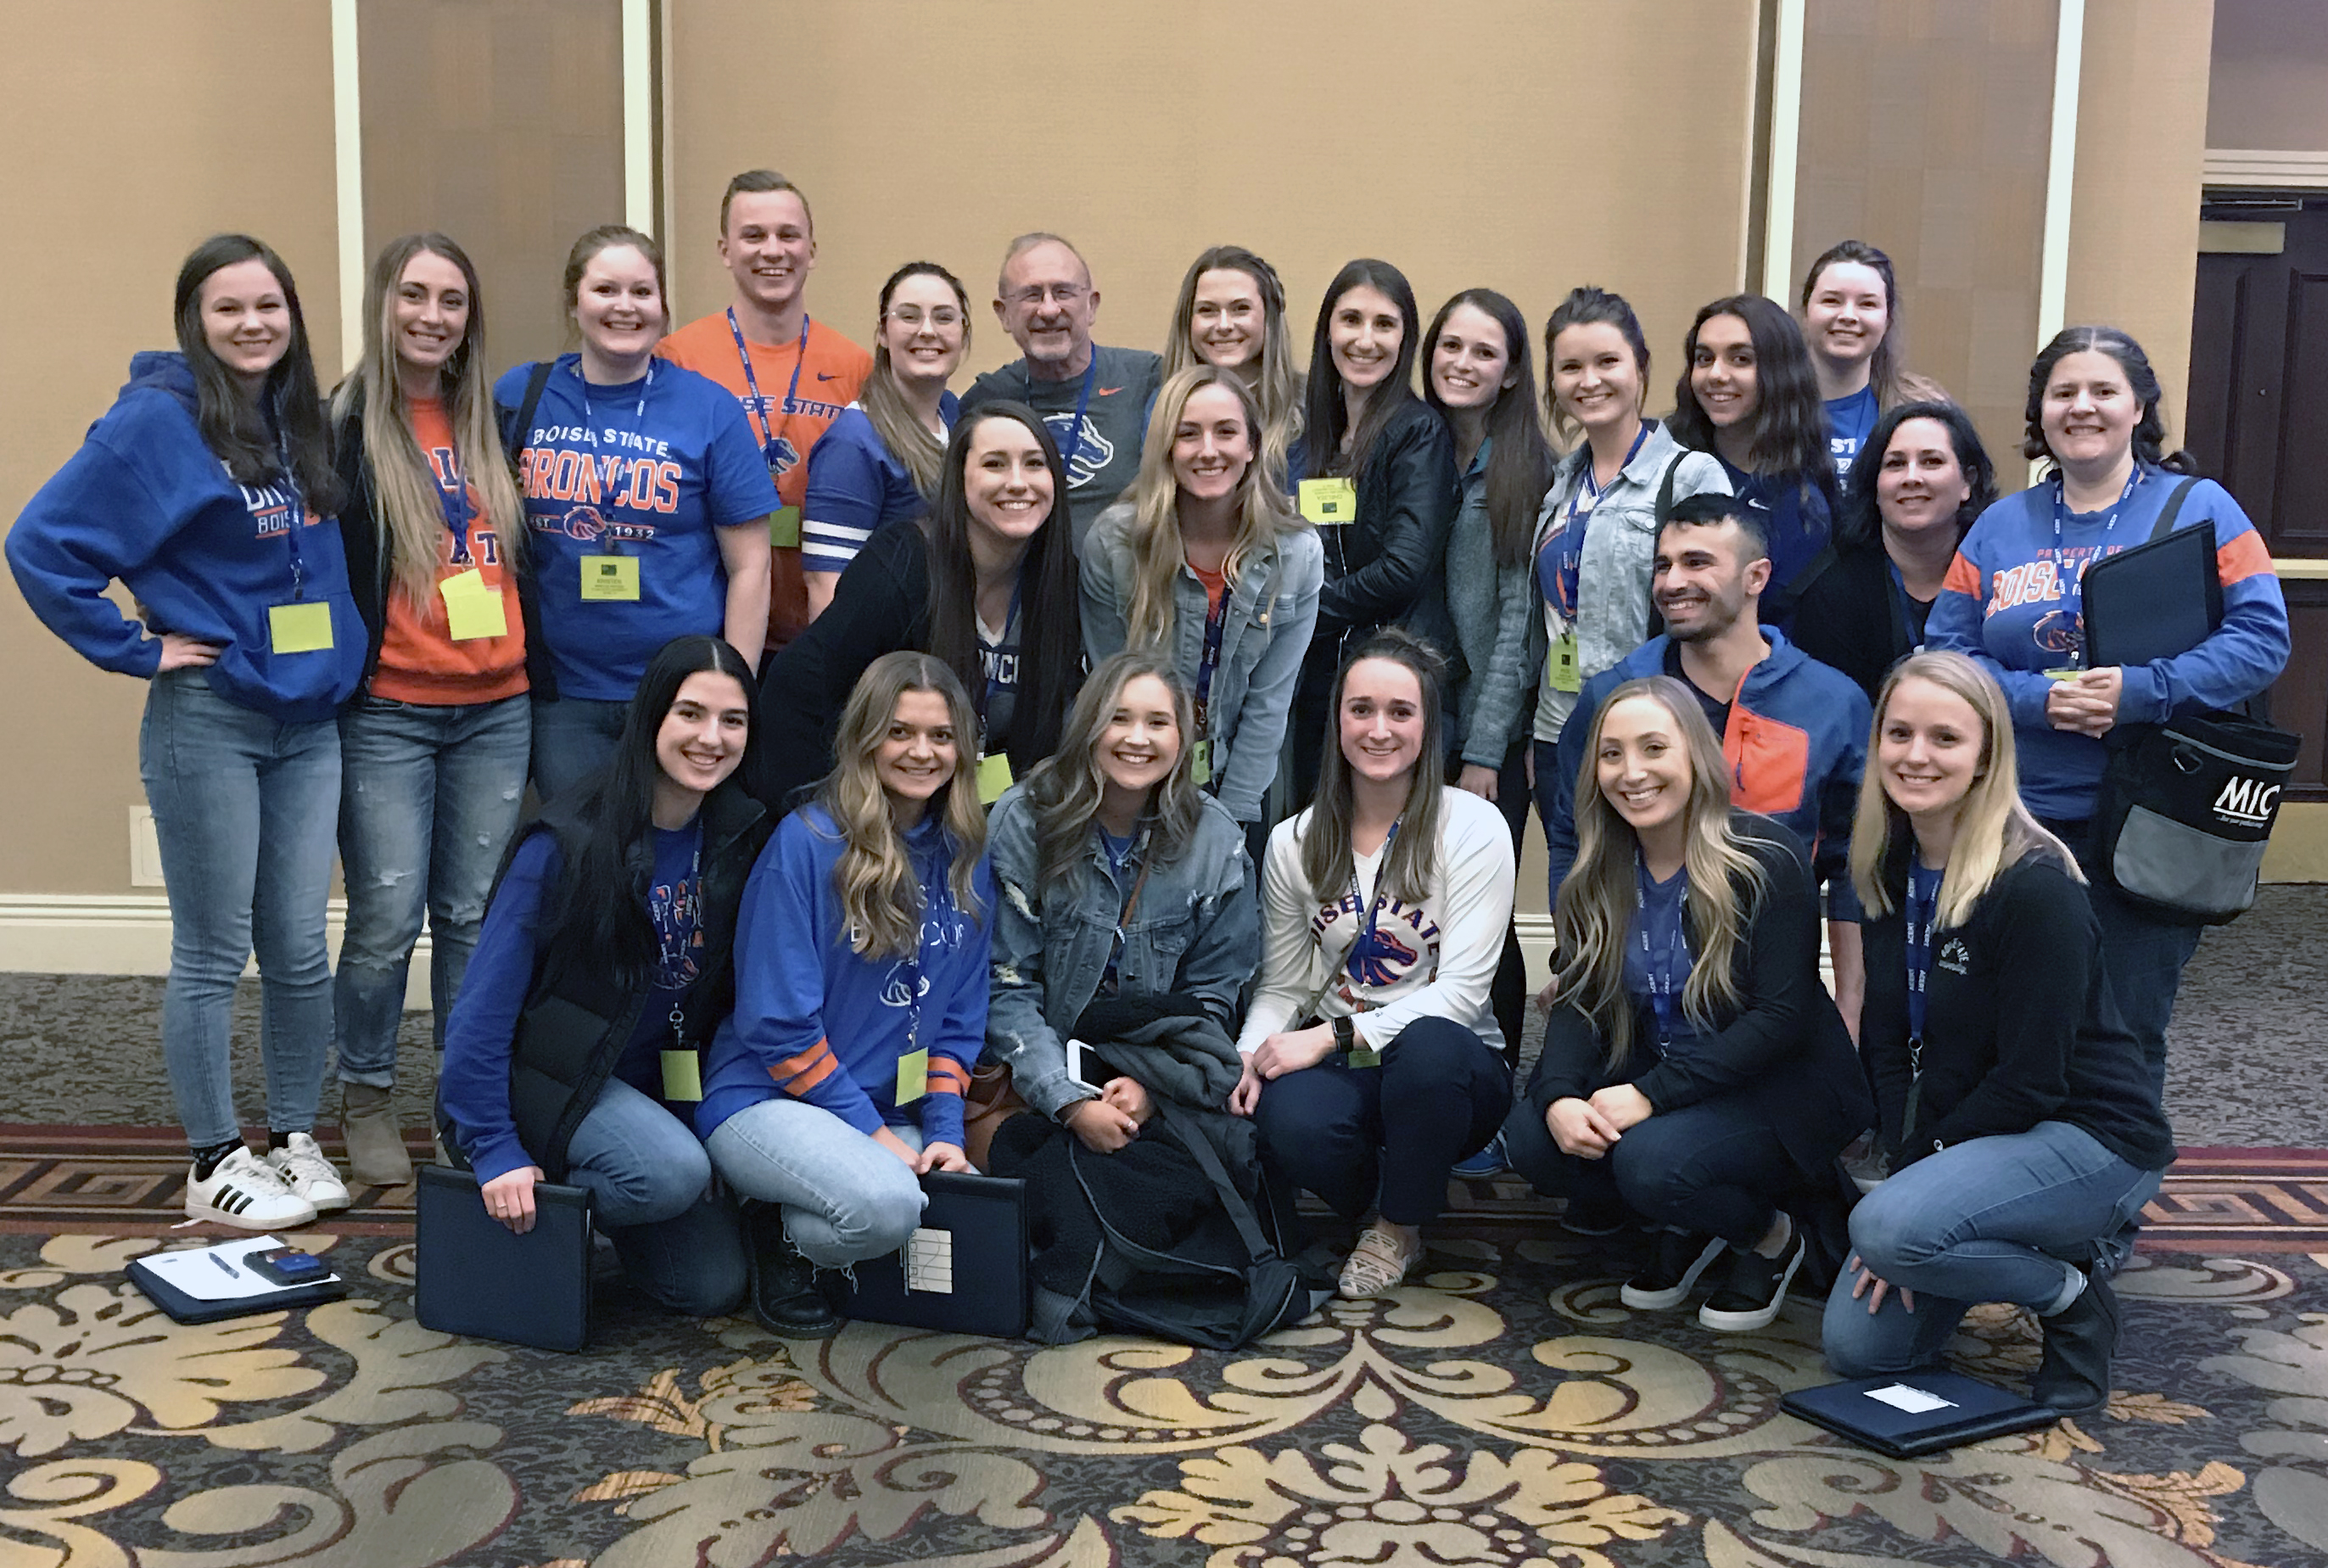 All Boise State Radiologic Science students that traveled to the conference.